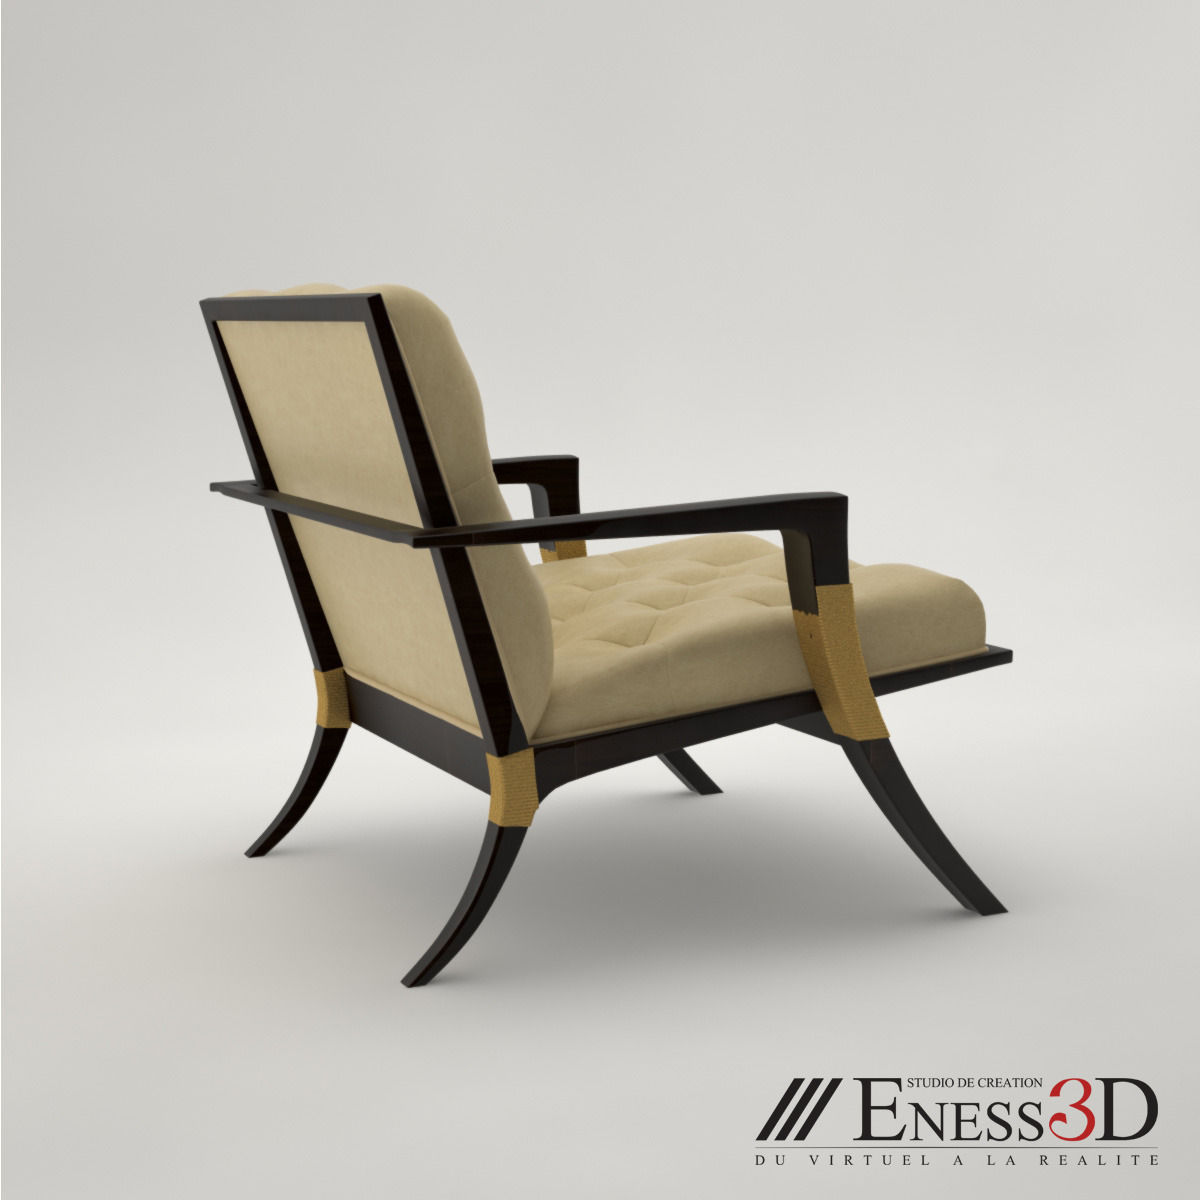 Pro baker athens lounge armchair 3d model max obj fbx for Chair 6 mt baker